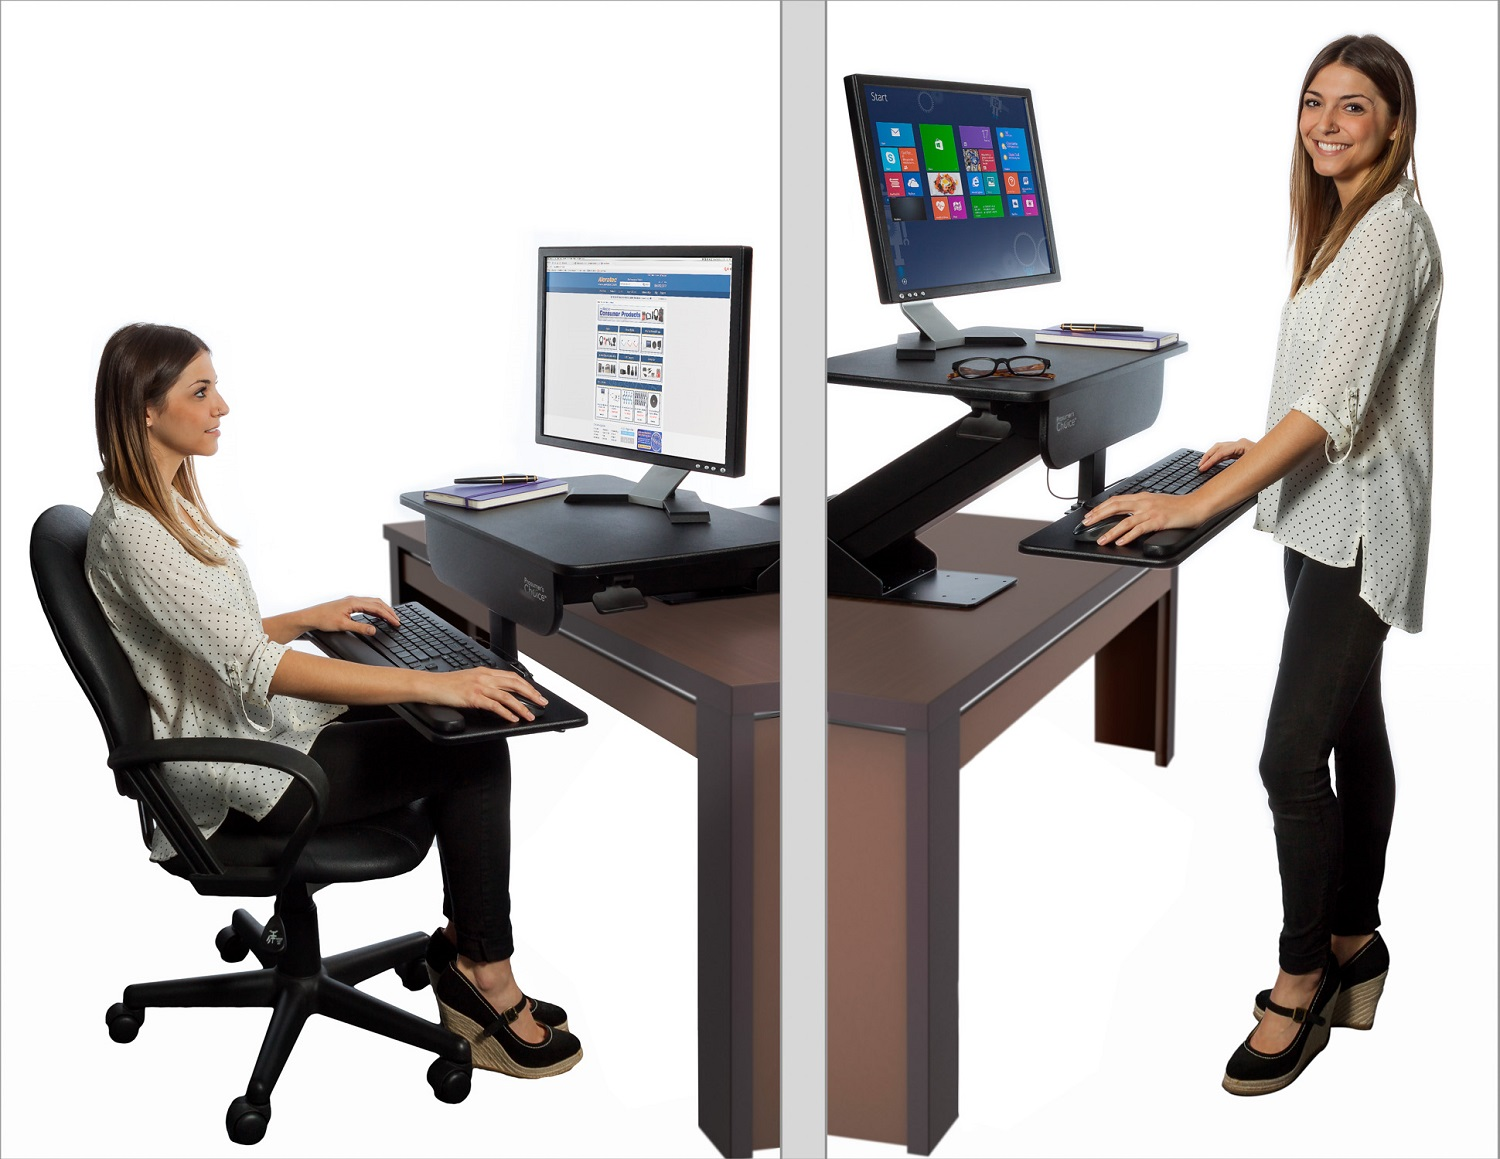 stand up desk chairs fisher price duck potty chair standing desks are they worth the hype glow physio